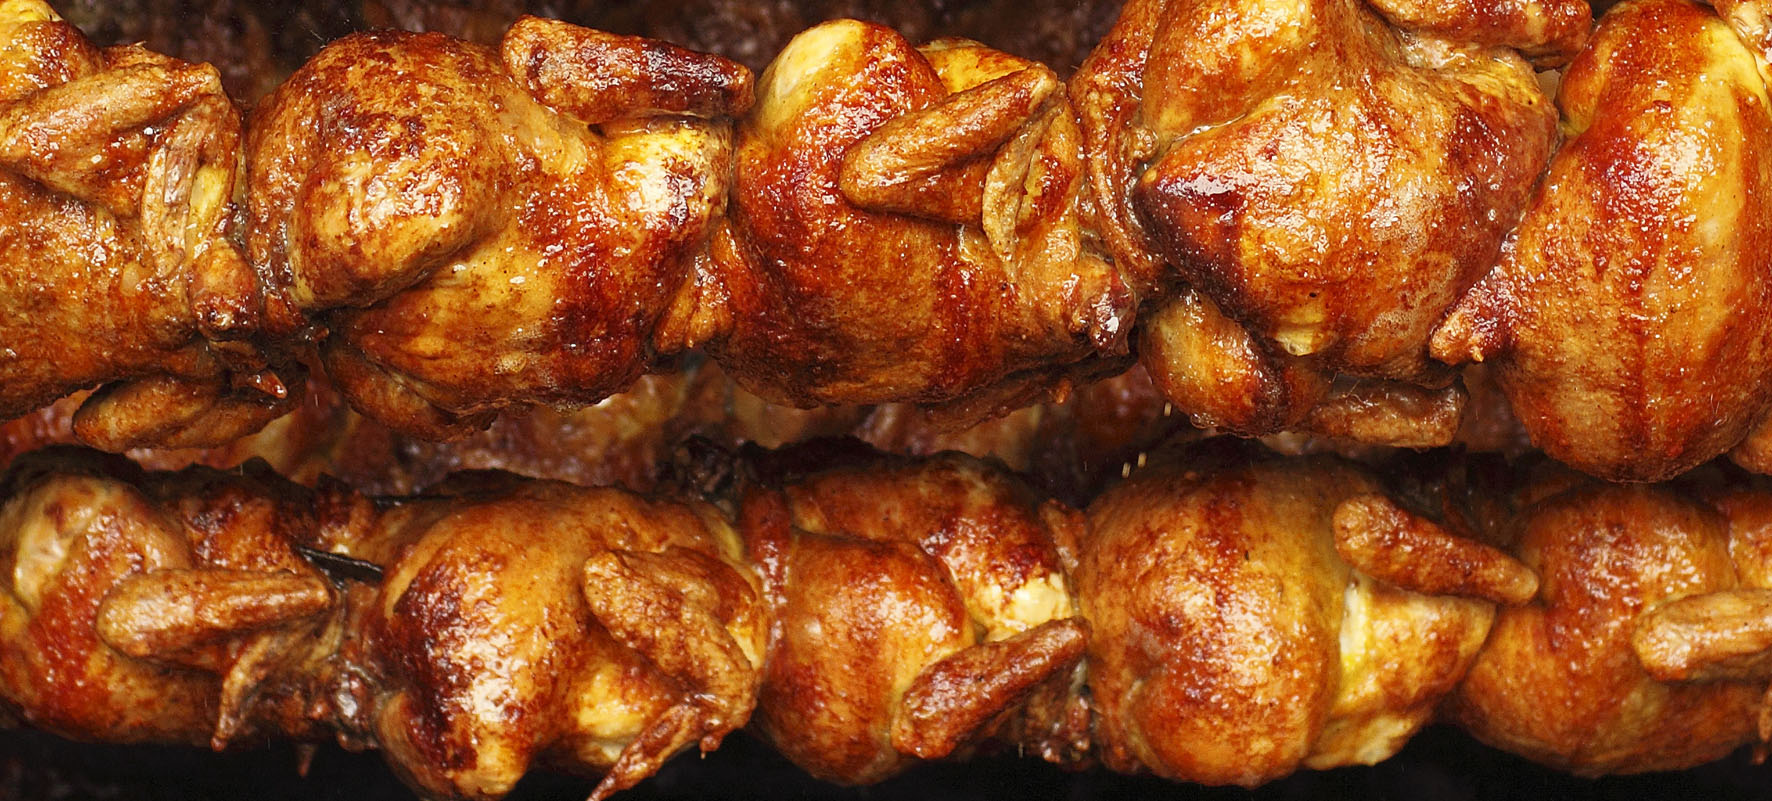 Roasted_chickens-DT-LG